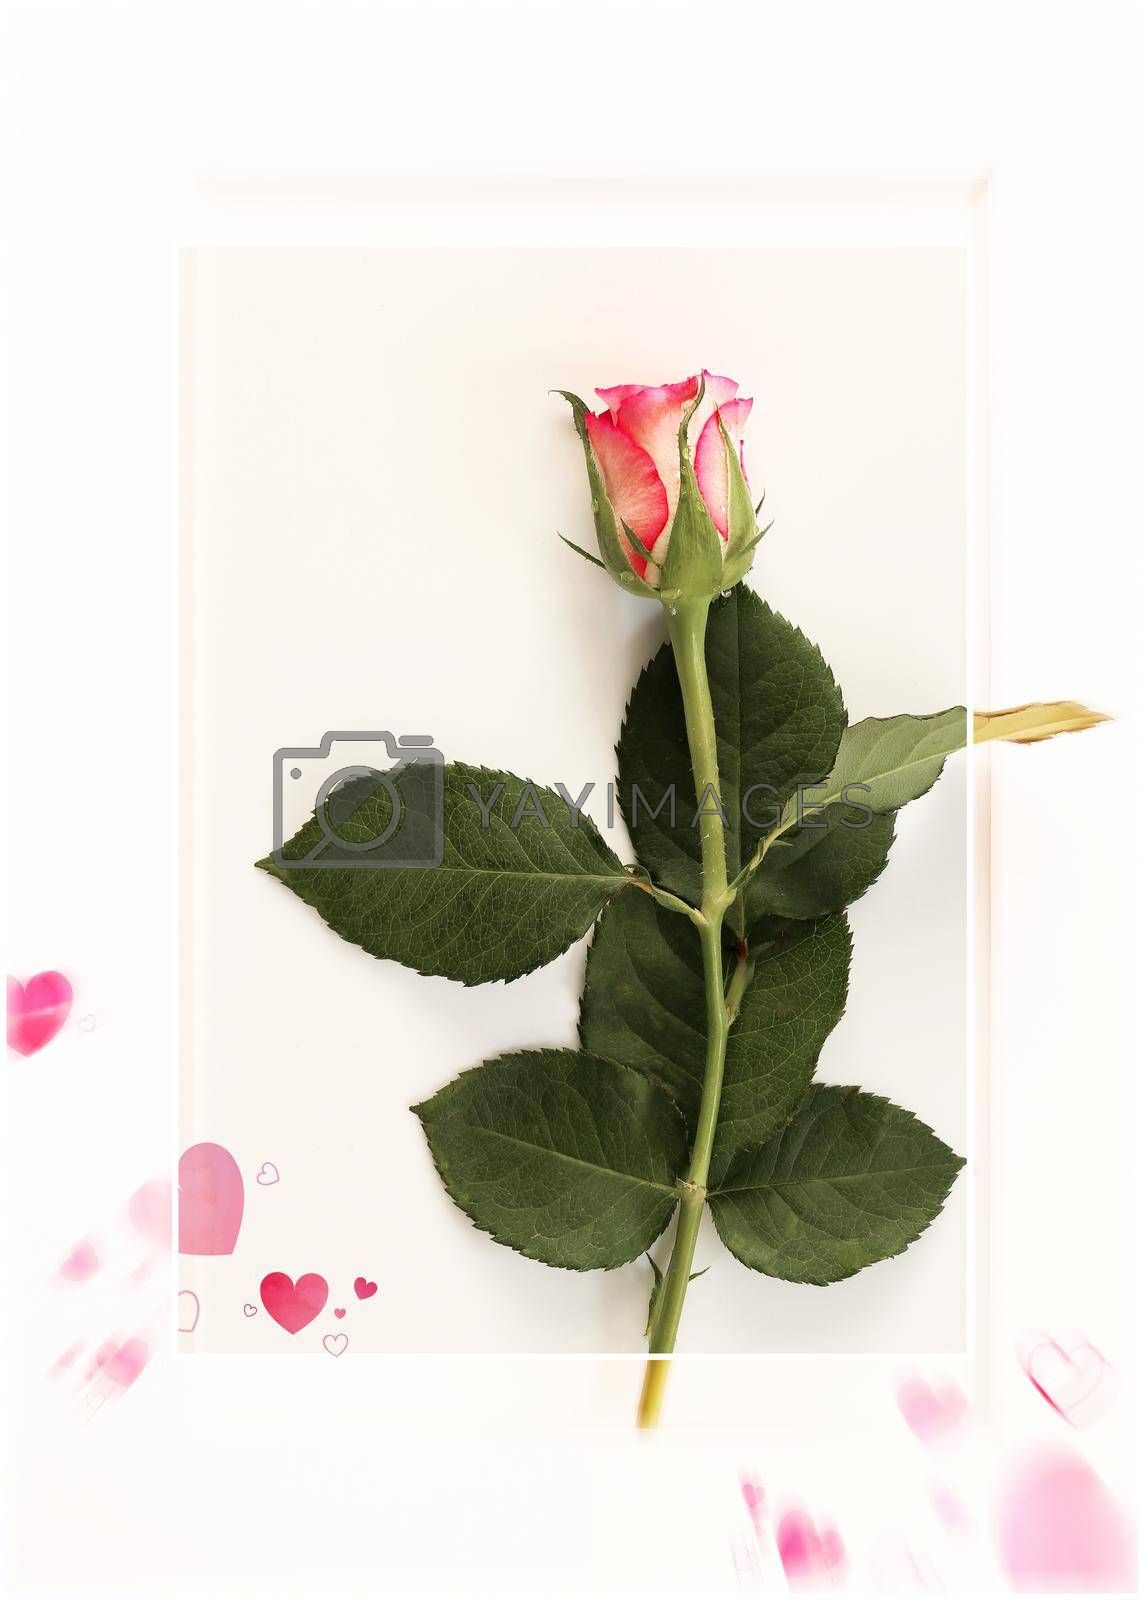 Love card with rose, Valentines day greeting card. Red pink rose flower, pink hearts on white frame. Top view, copy space, place for text. Cards for romantic love greetings